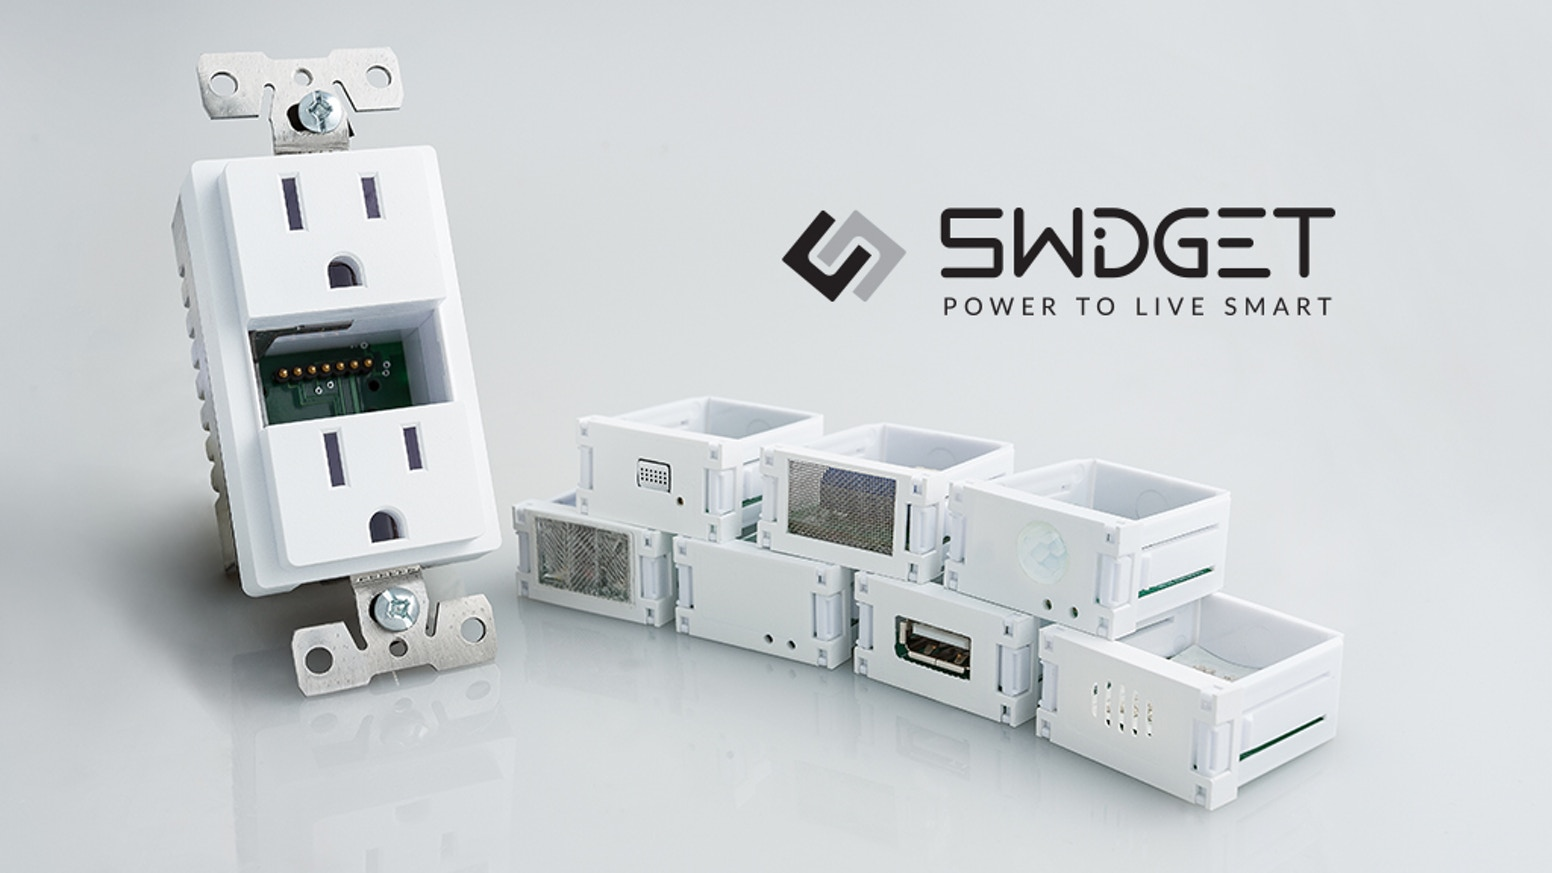 Installed using your existing wiring, Swidget eliminates clutter by hiding your smart home technology into an extraordinary outlet.